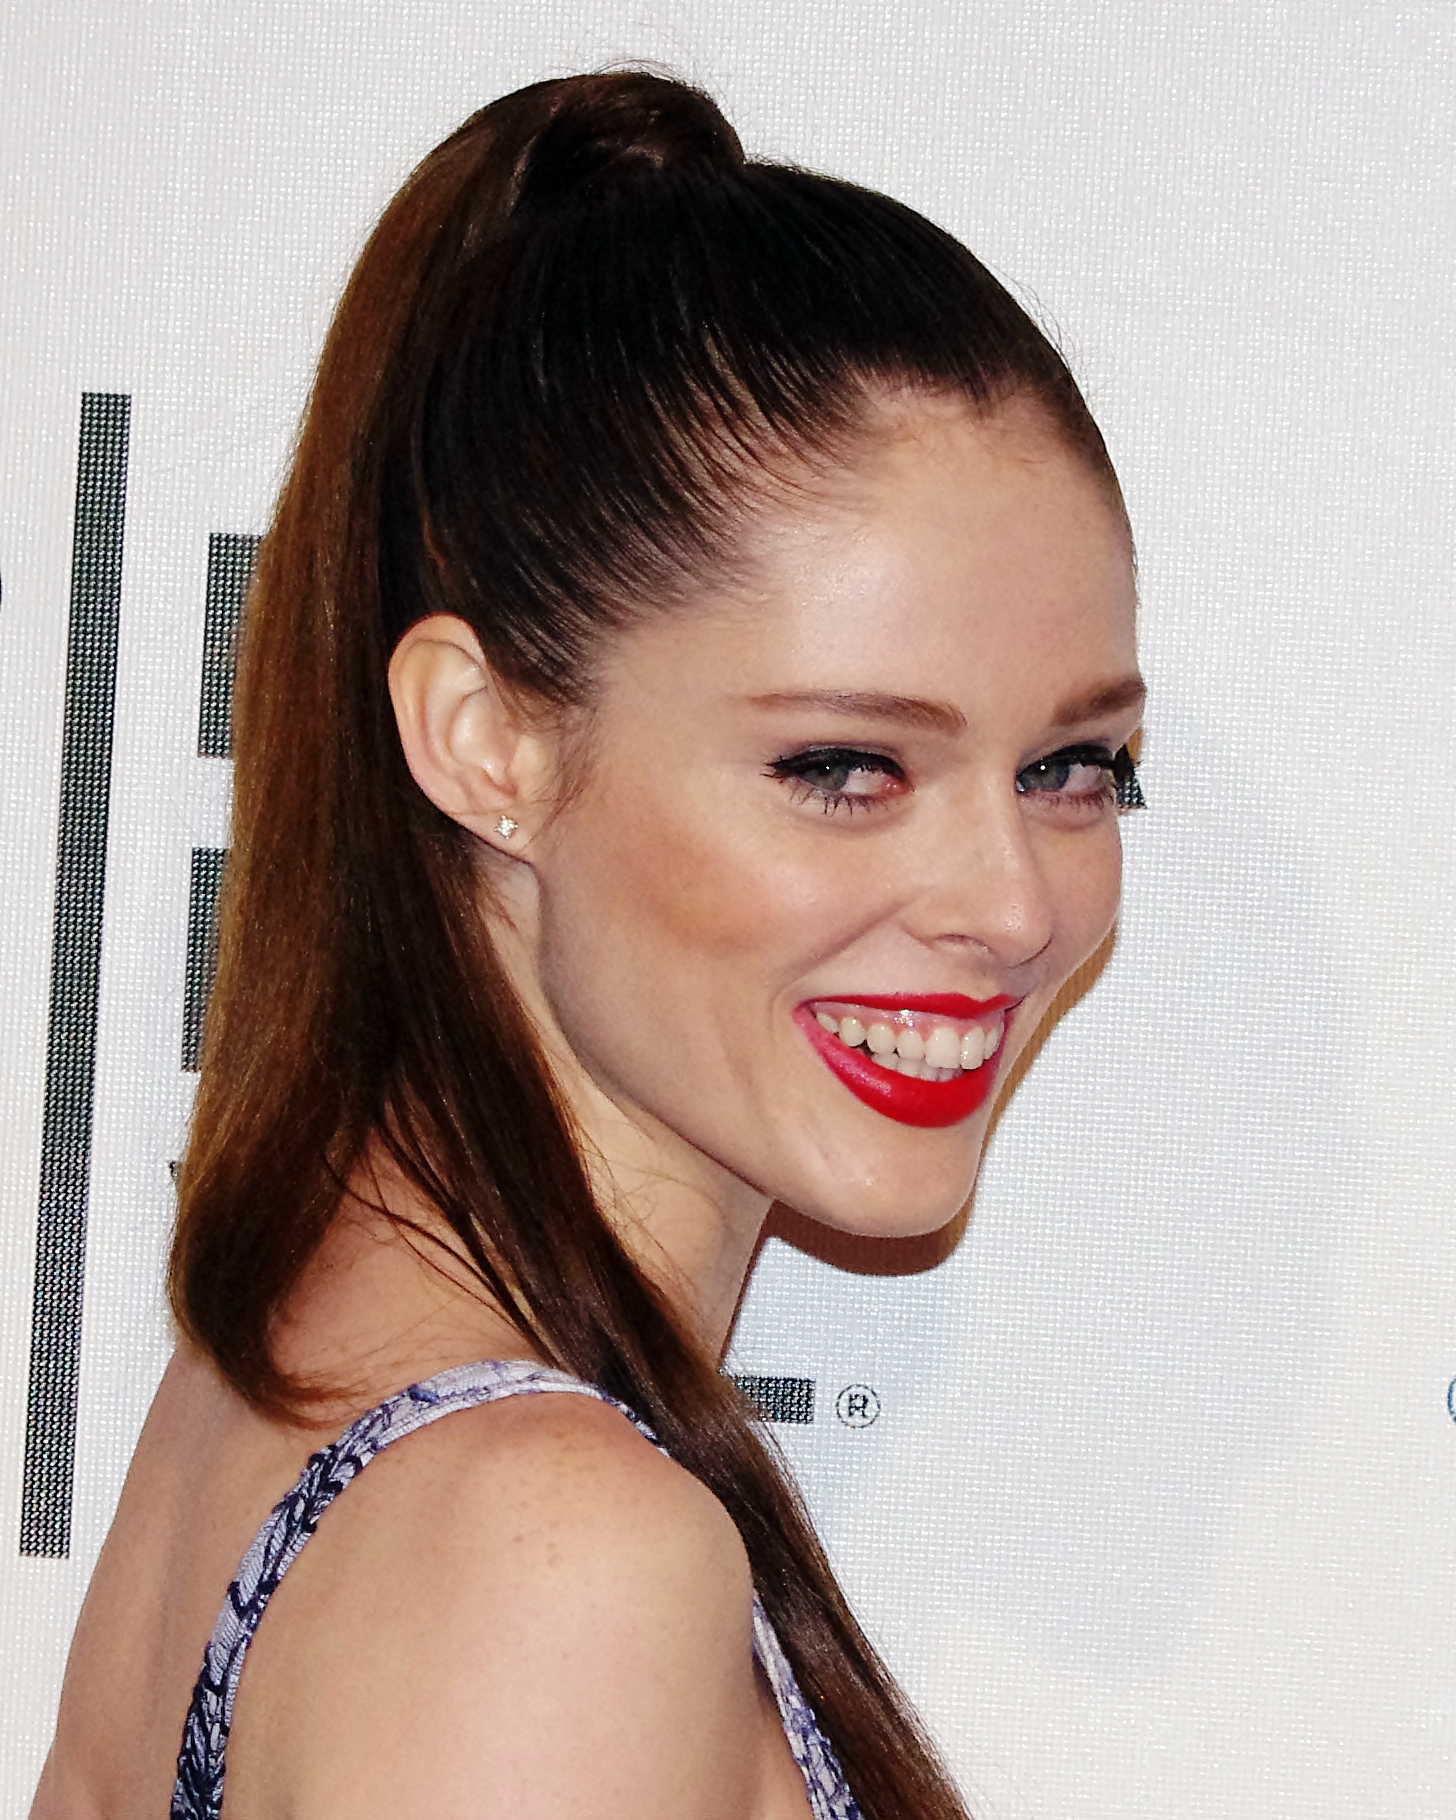 coco rocha pregnantcoco rocha poses, coco rocha posing, coco rocha vogue, coco rocha vk, coco rocha wedding, coco rocha listal, coco rocha bellazon, coco rocha gif, coco rocha dancing, coco rocha insta, coco rocha harper's bazaar, coco rocha husband, coco rocha covers, coco rocha elle russia, coco rocha pregnant, coco rocha bio, coco rocha fashion spot, coco rocha interview, coco rocha model agency, coco rocha 100 poses in a minute